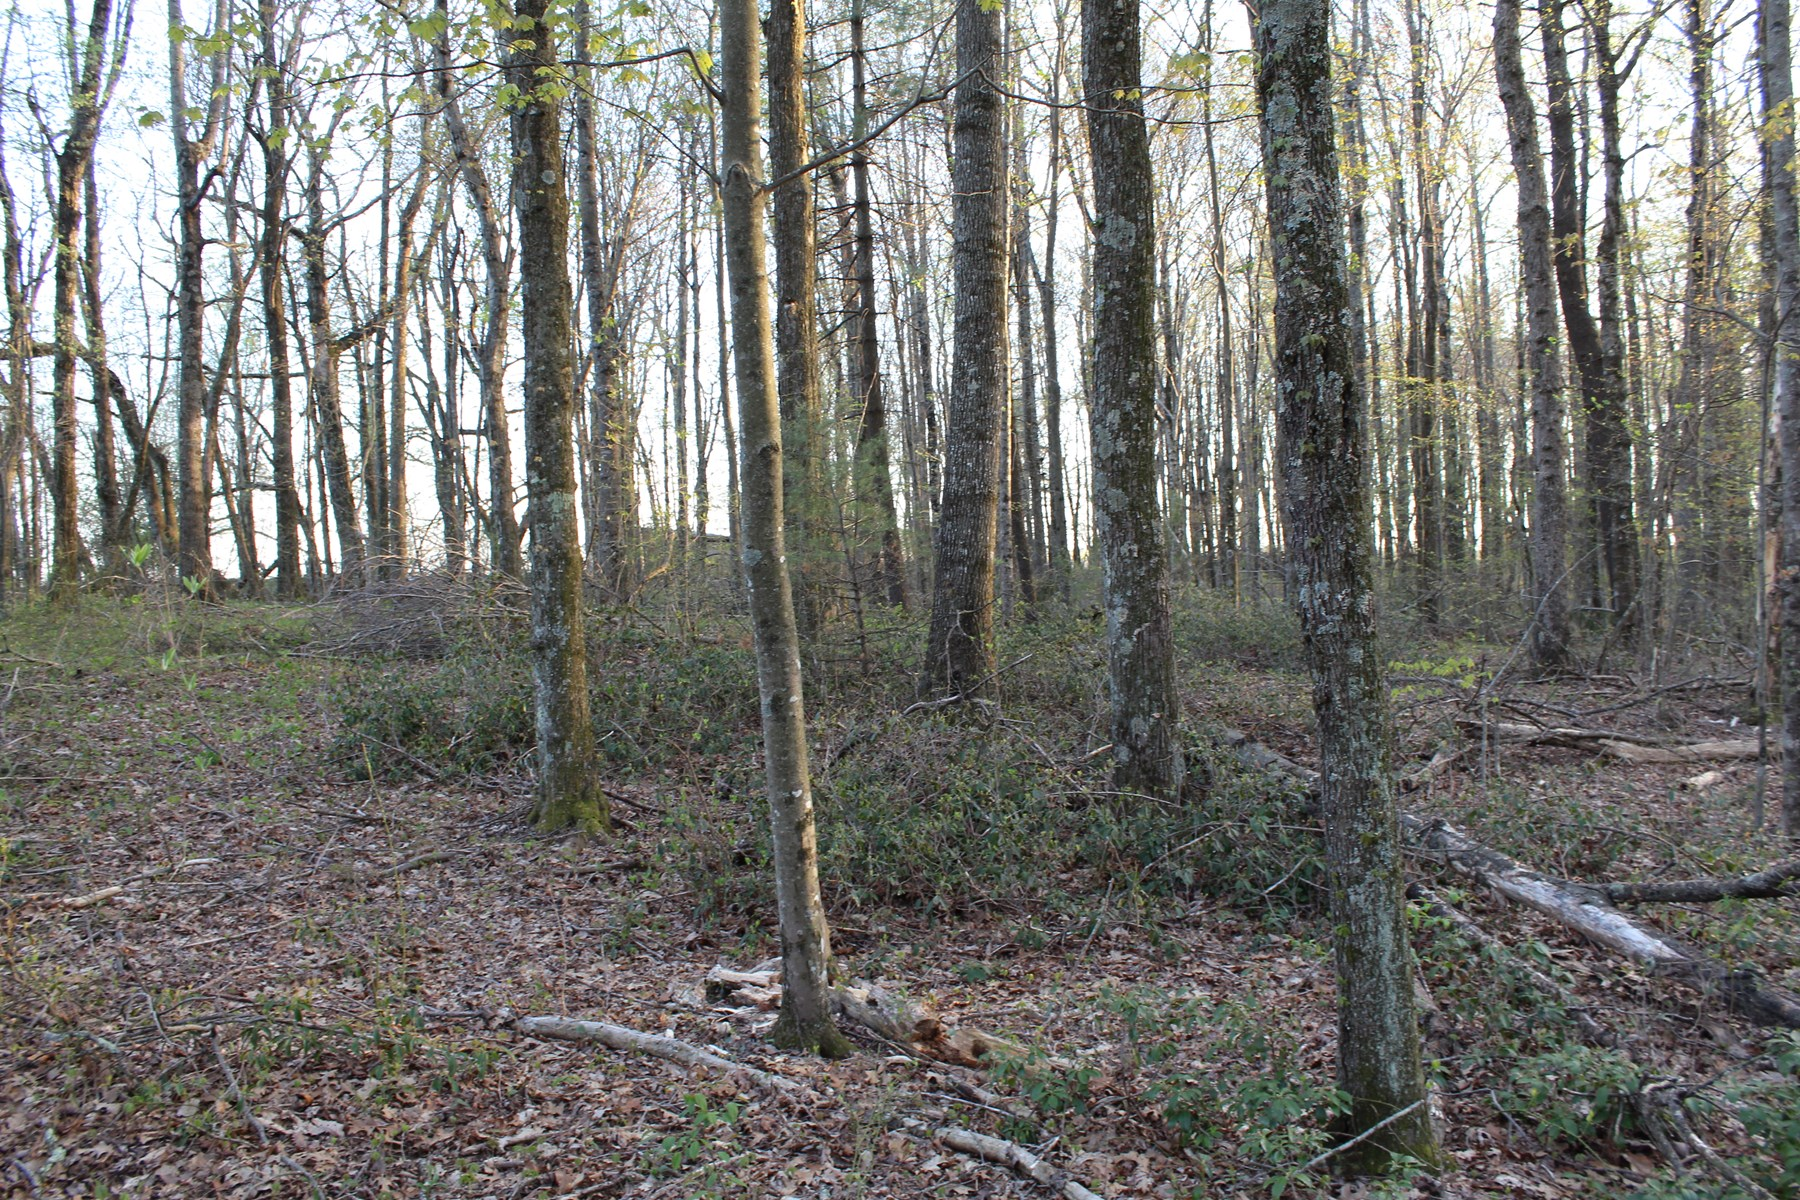 1.75 ACRES OF LAND LOCATED IN CARROLL COUNTY, VIRGINIA